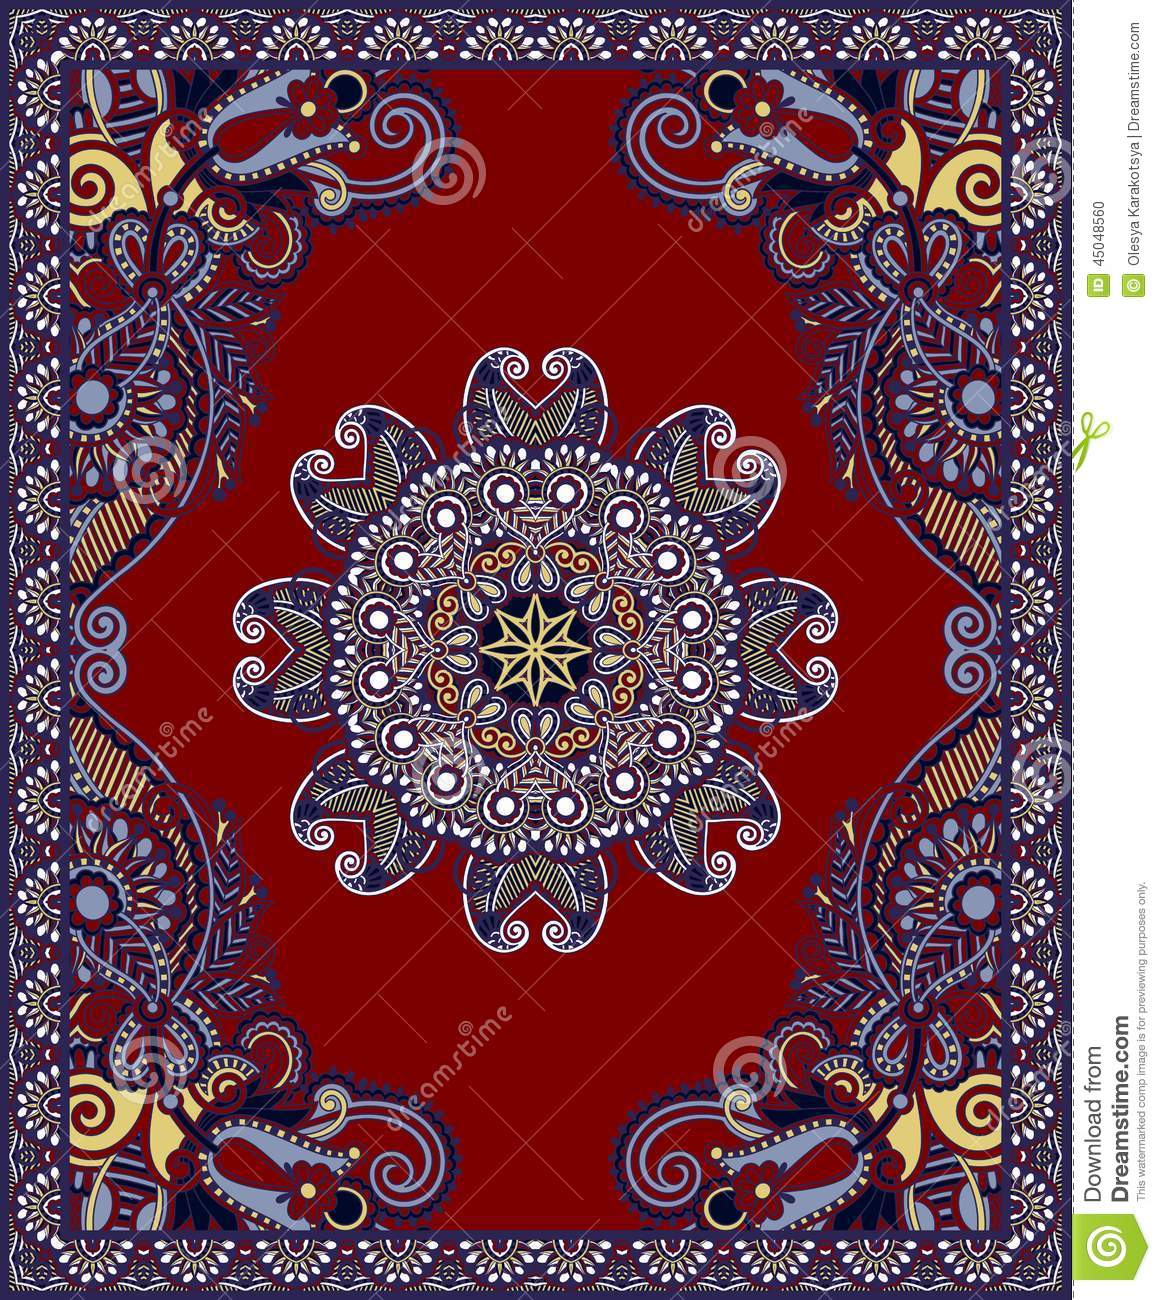 Carpet Design Glamorous Ukrainian Oriental Floral Ornamental Carpet Design Stock Vector . Design Ideas